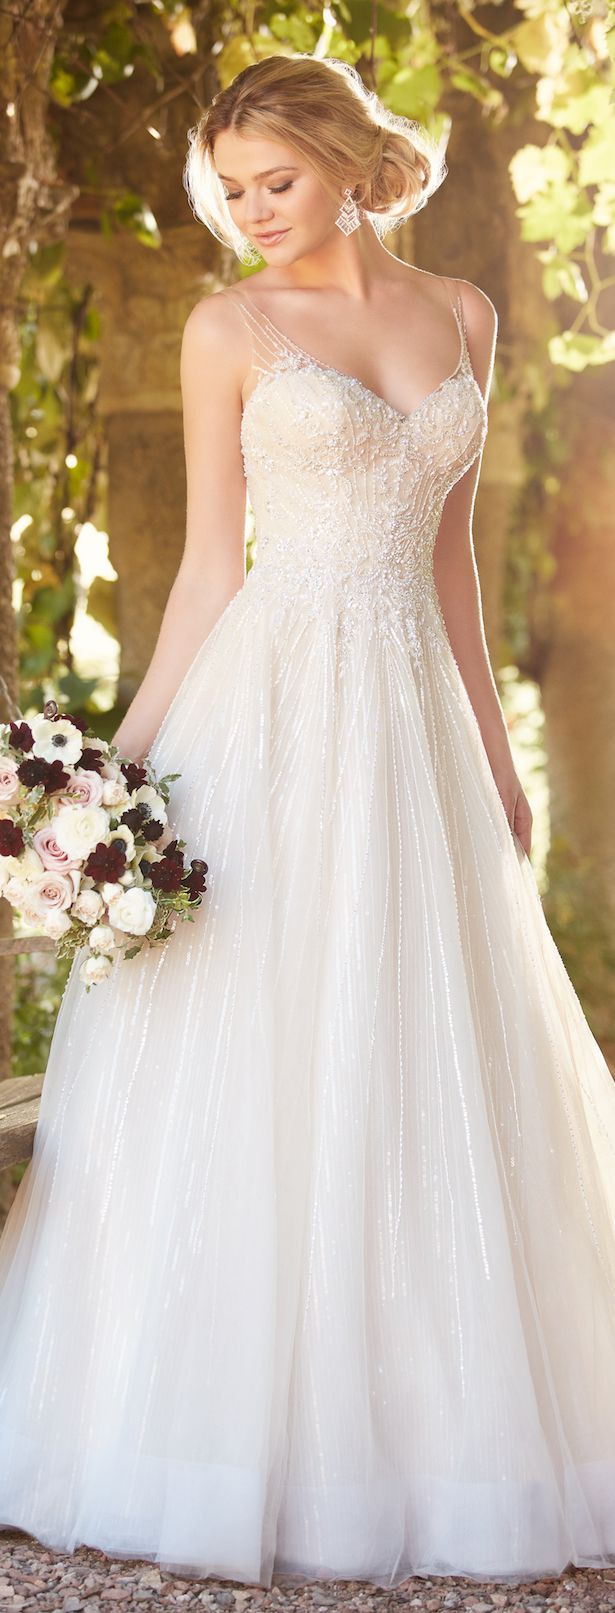 Essense of australia spring bridal collection bridal